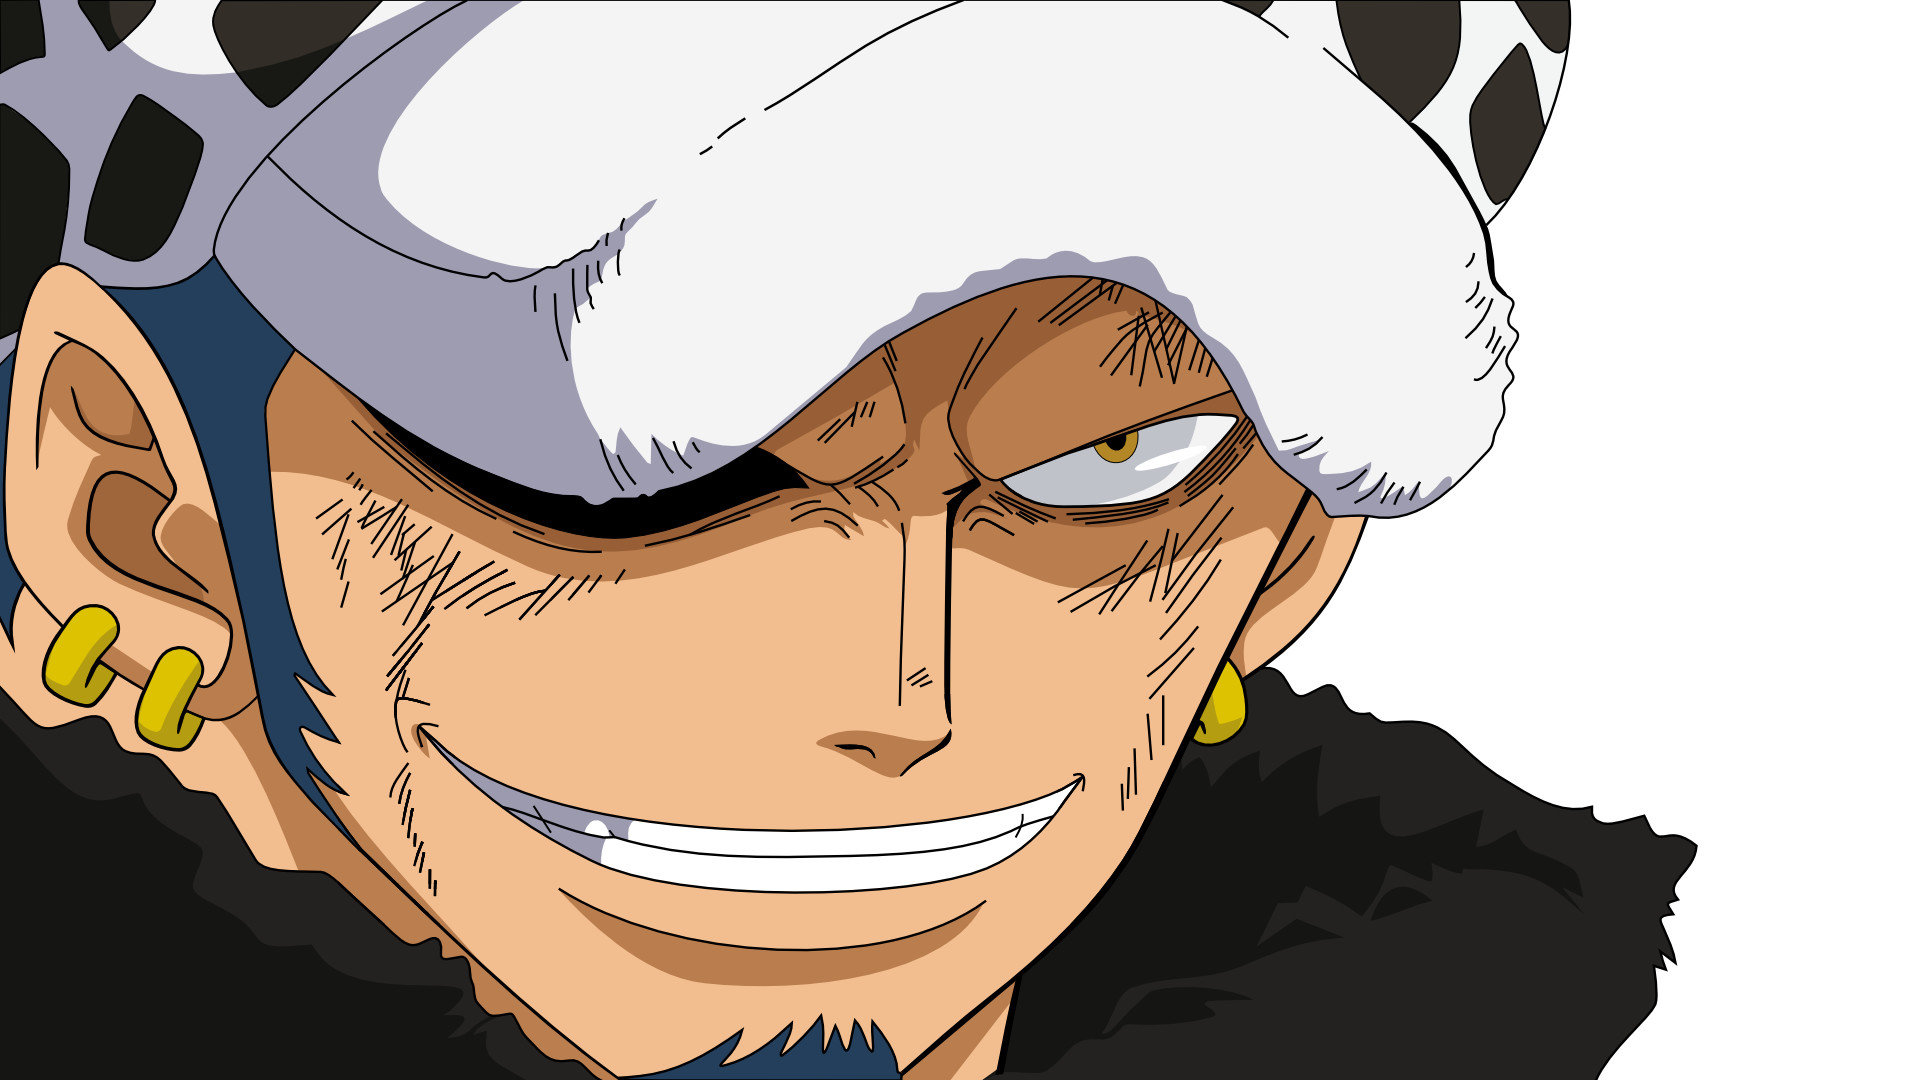 Download full hd 1920x1080 Trafalgar Law computer wallpaper ID:314758 for free